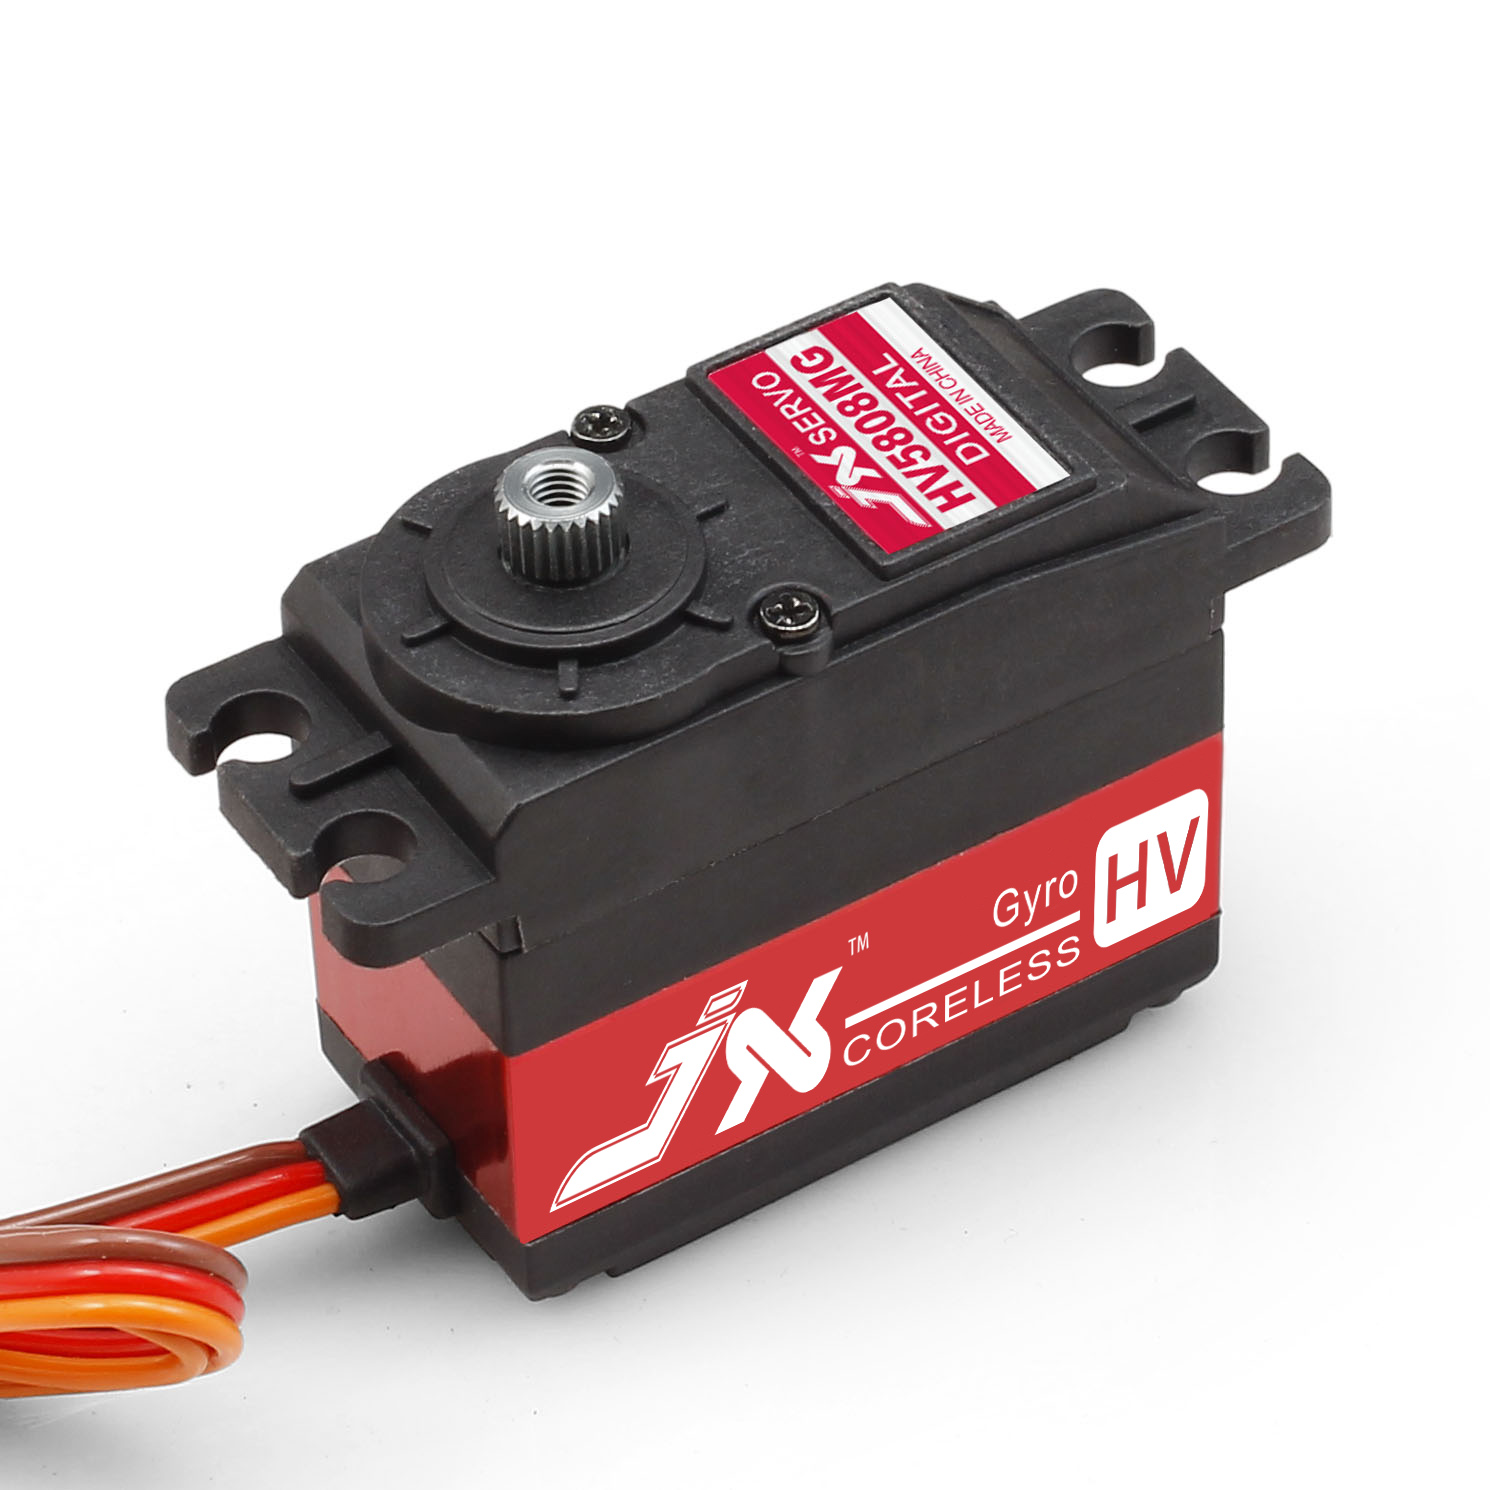 Superior Hobby Jx PDI-HV5808MG 7KG High Precision Metal Gear High Voltage Digital Coreless Narrow band Servo superior hobby jx cls6310hv 10kg aluminium shell metal gear high voltage coreless digital servo